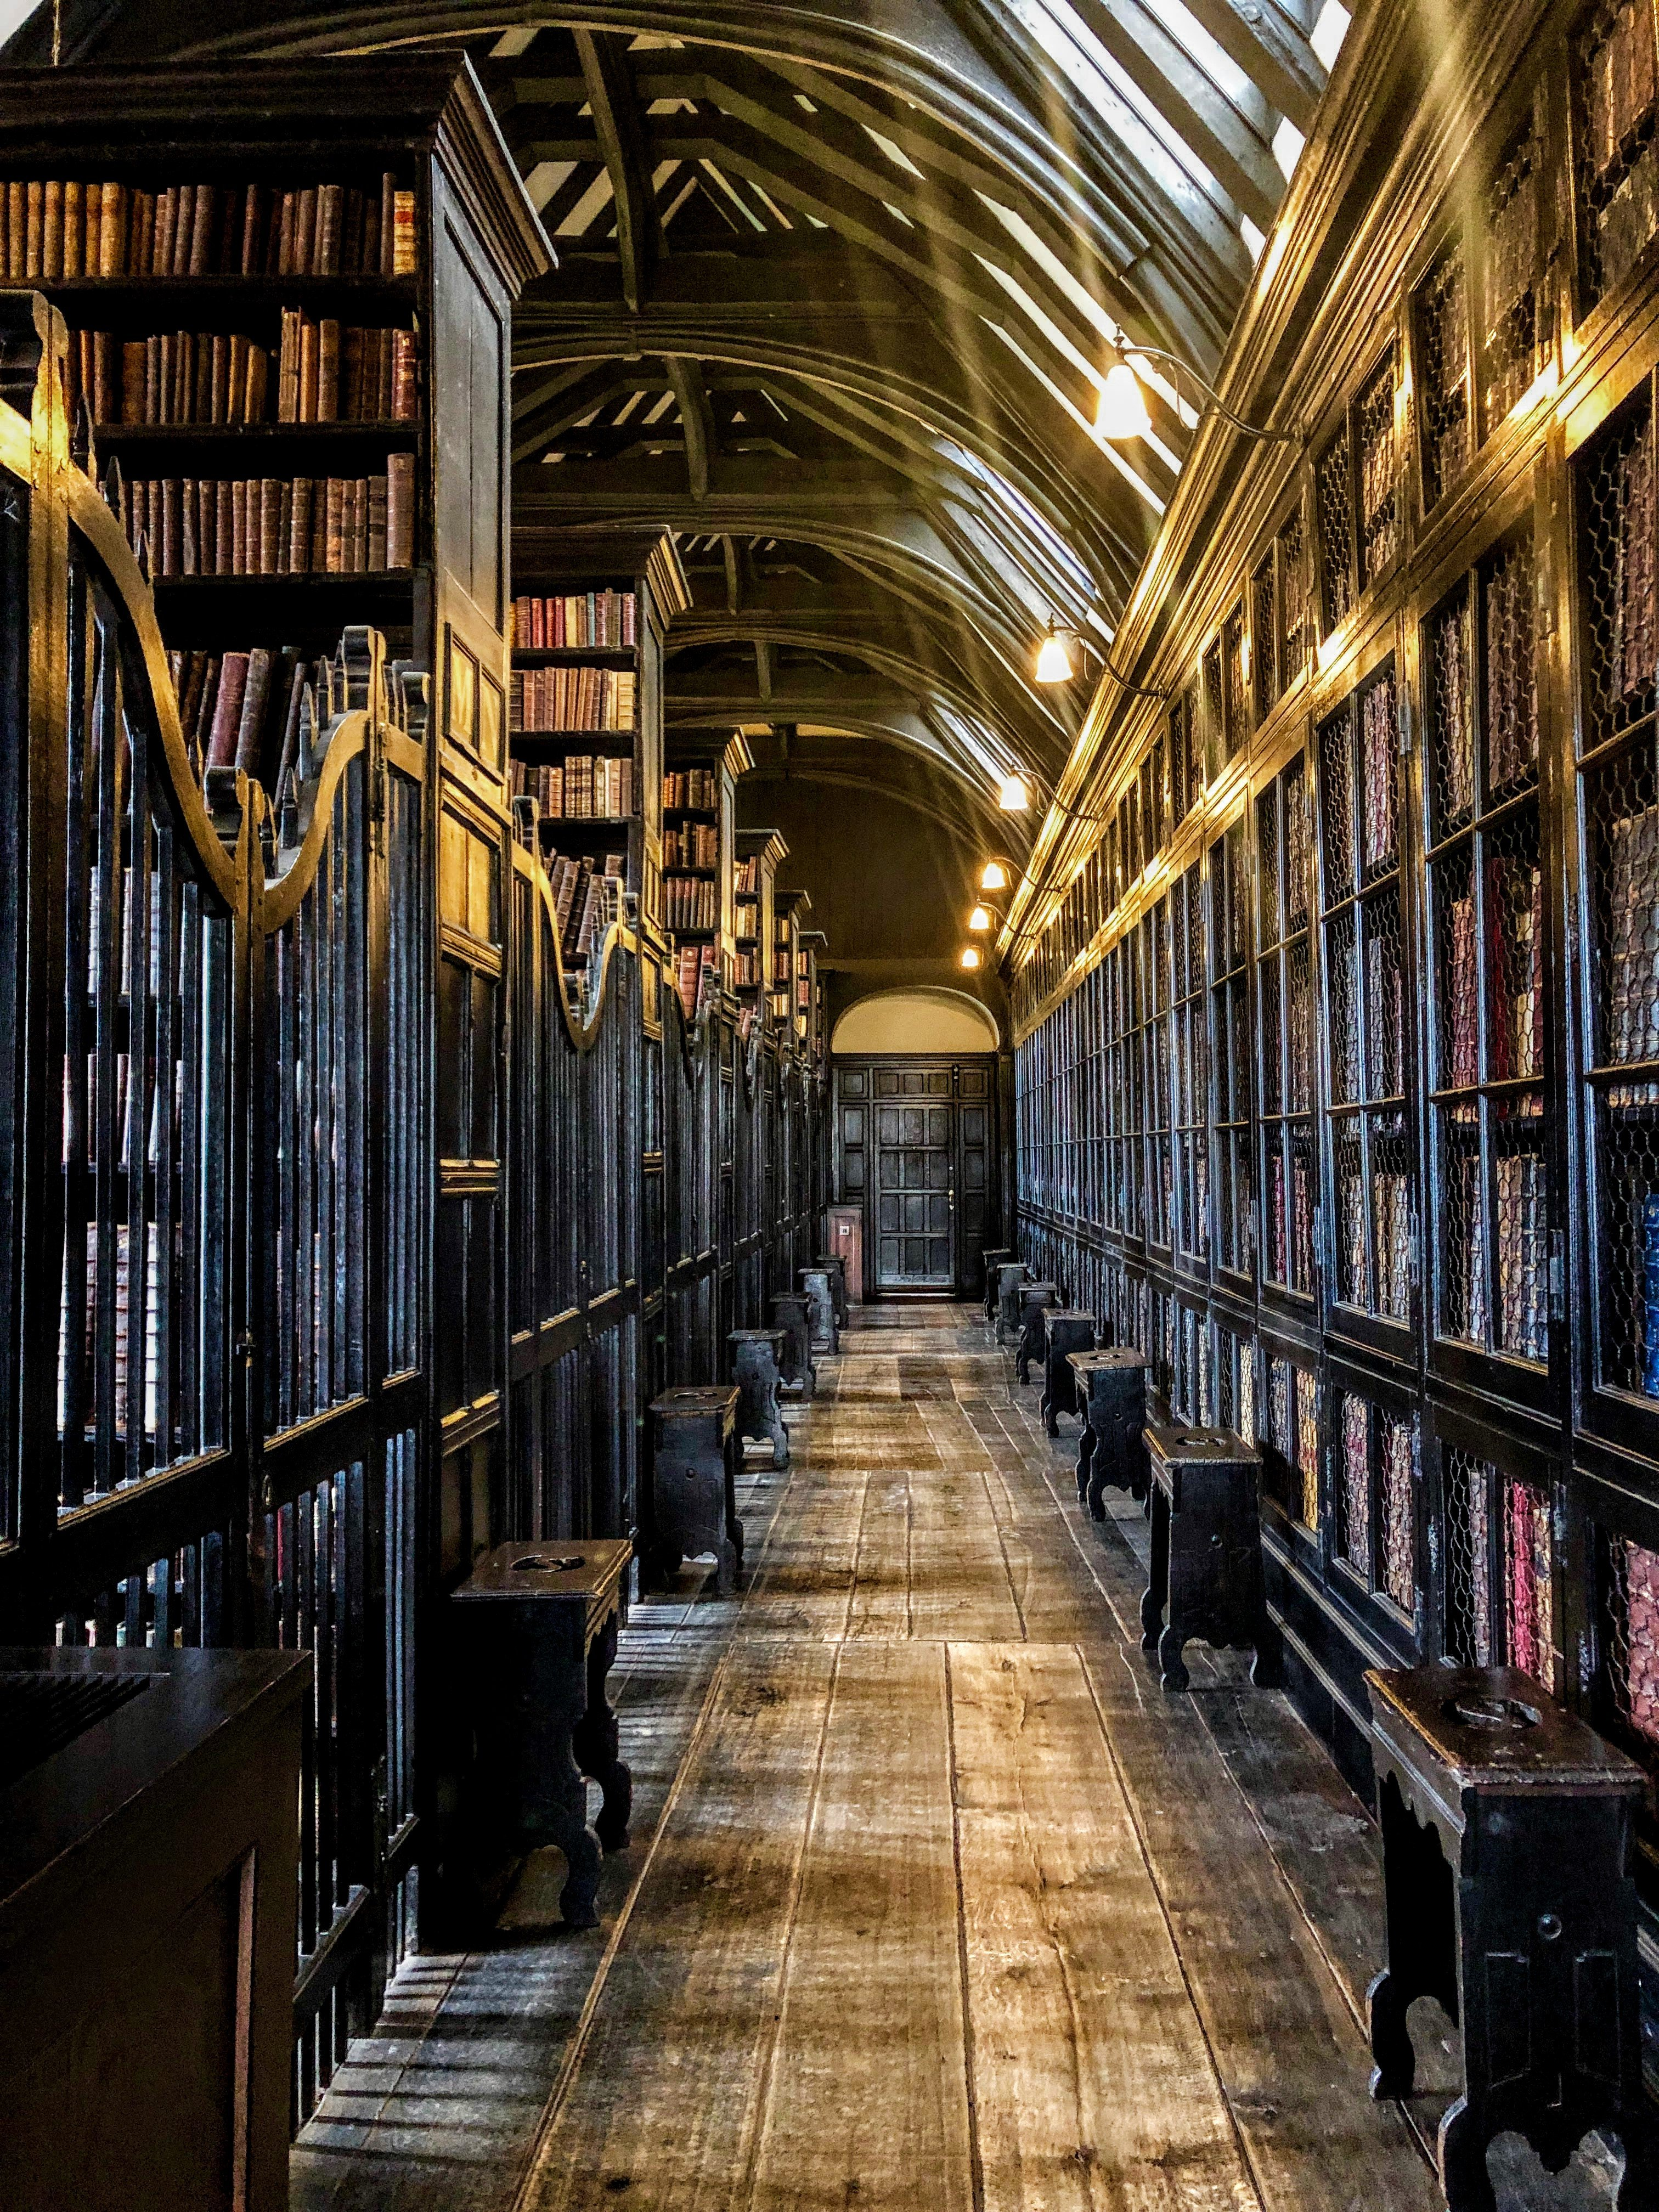 Chetham's Library in Manchester, UK